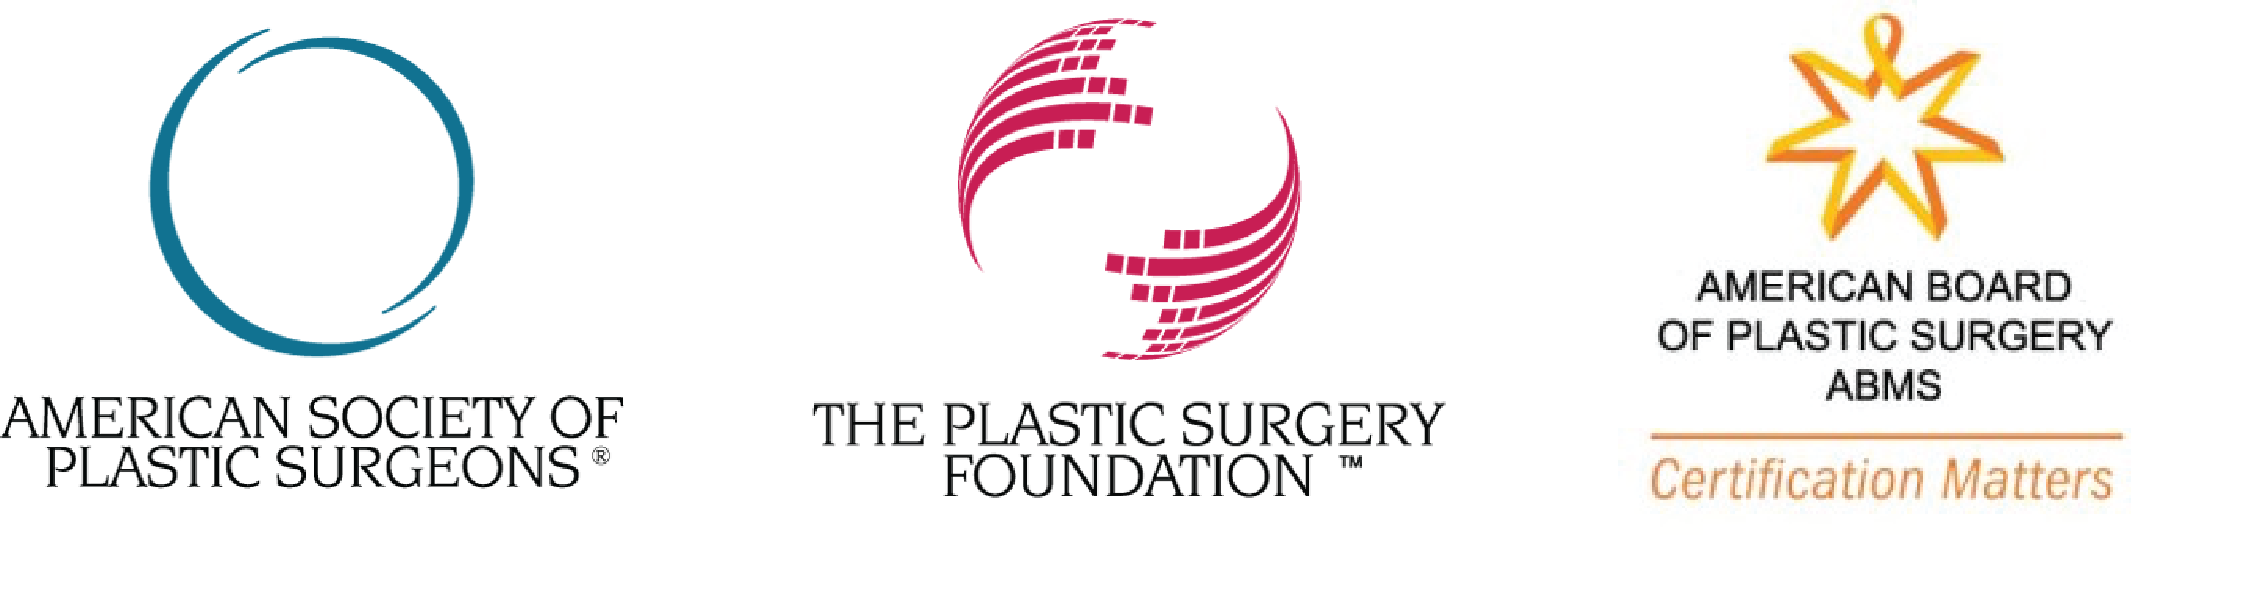 Dr. Smaili is board certified by The American Board of Plastic Surgery